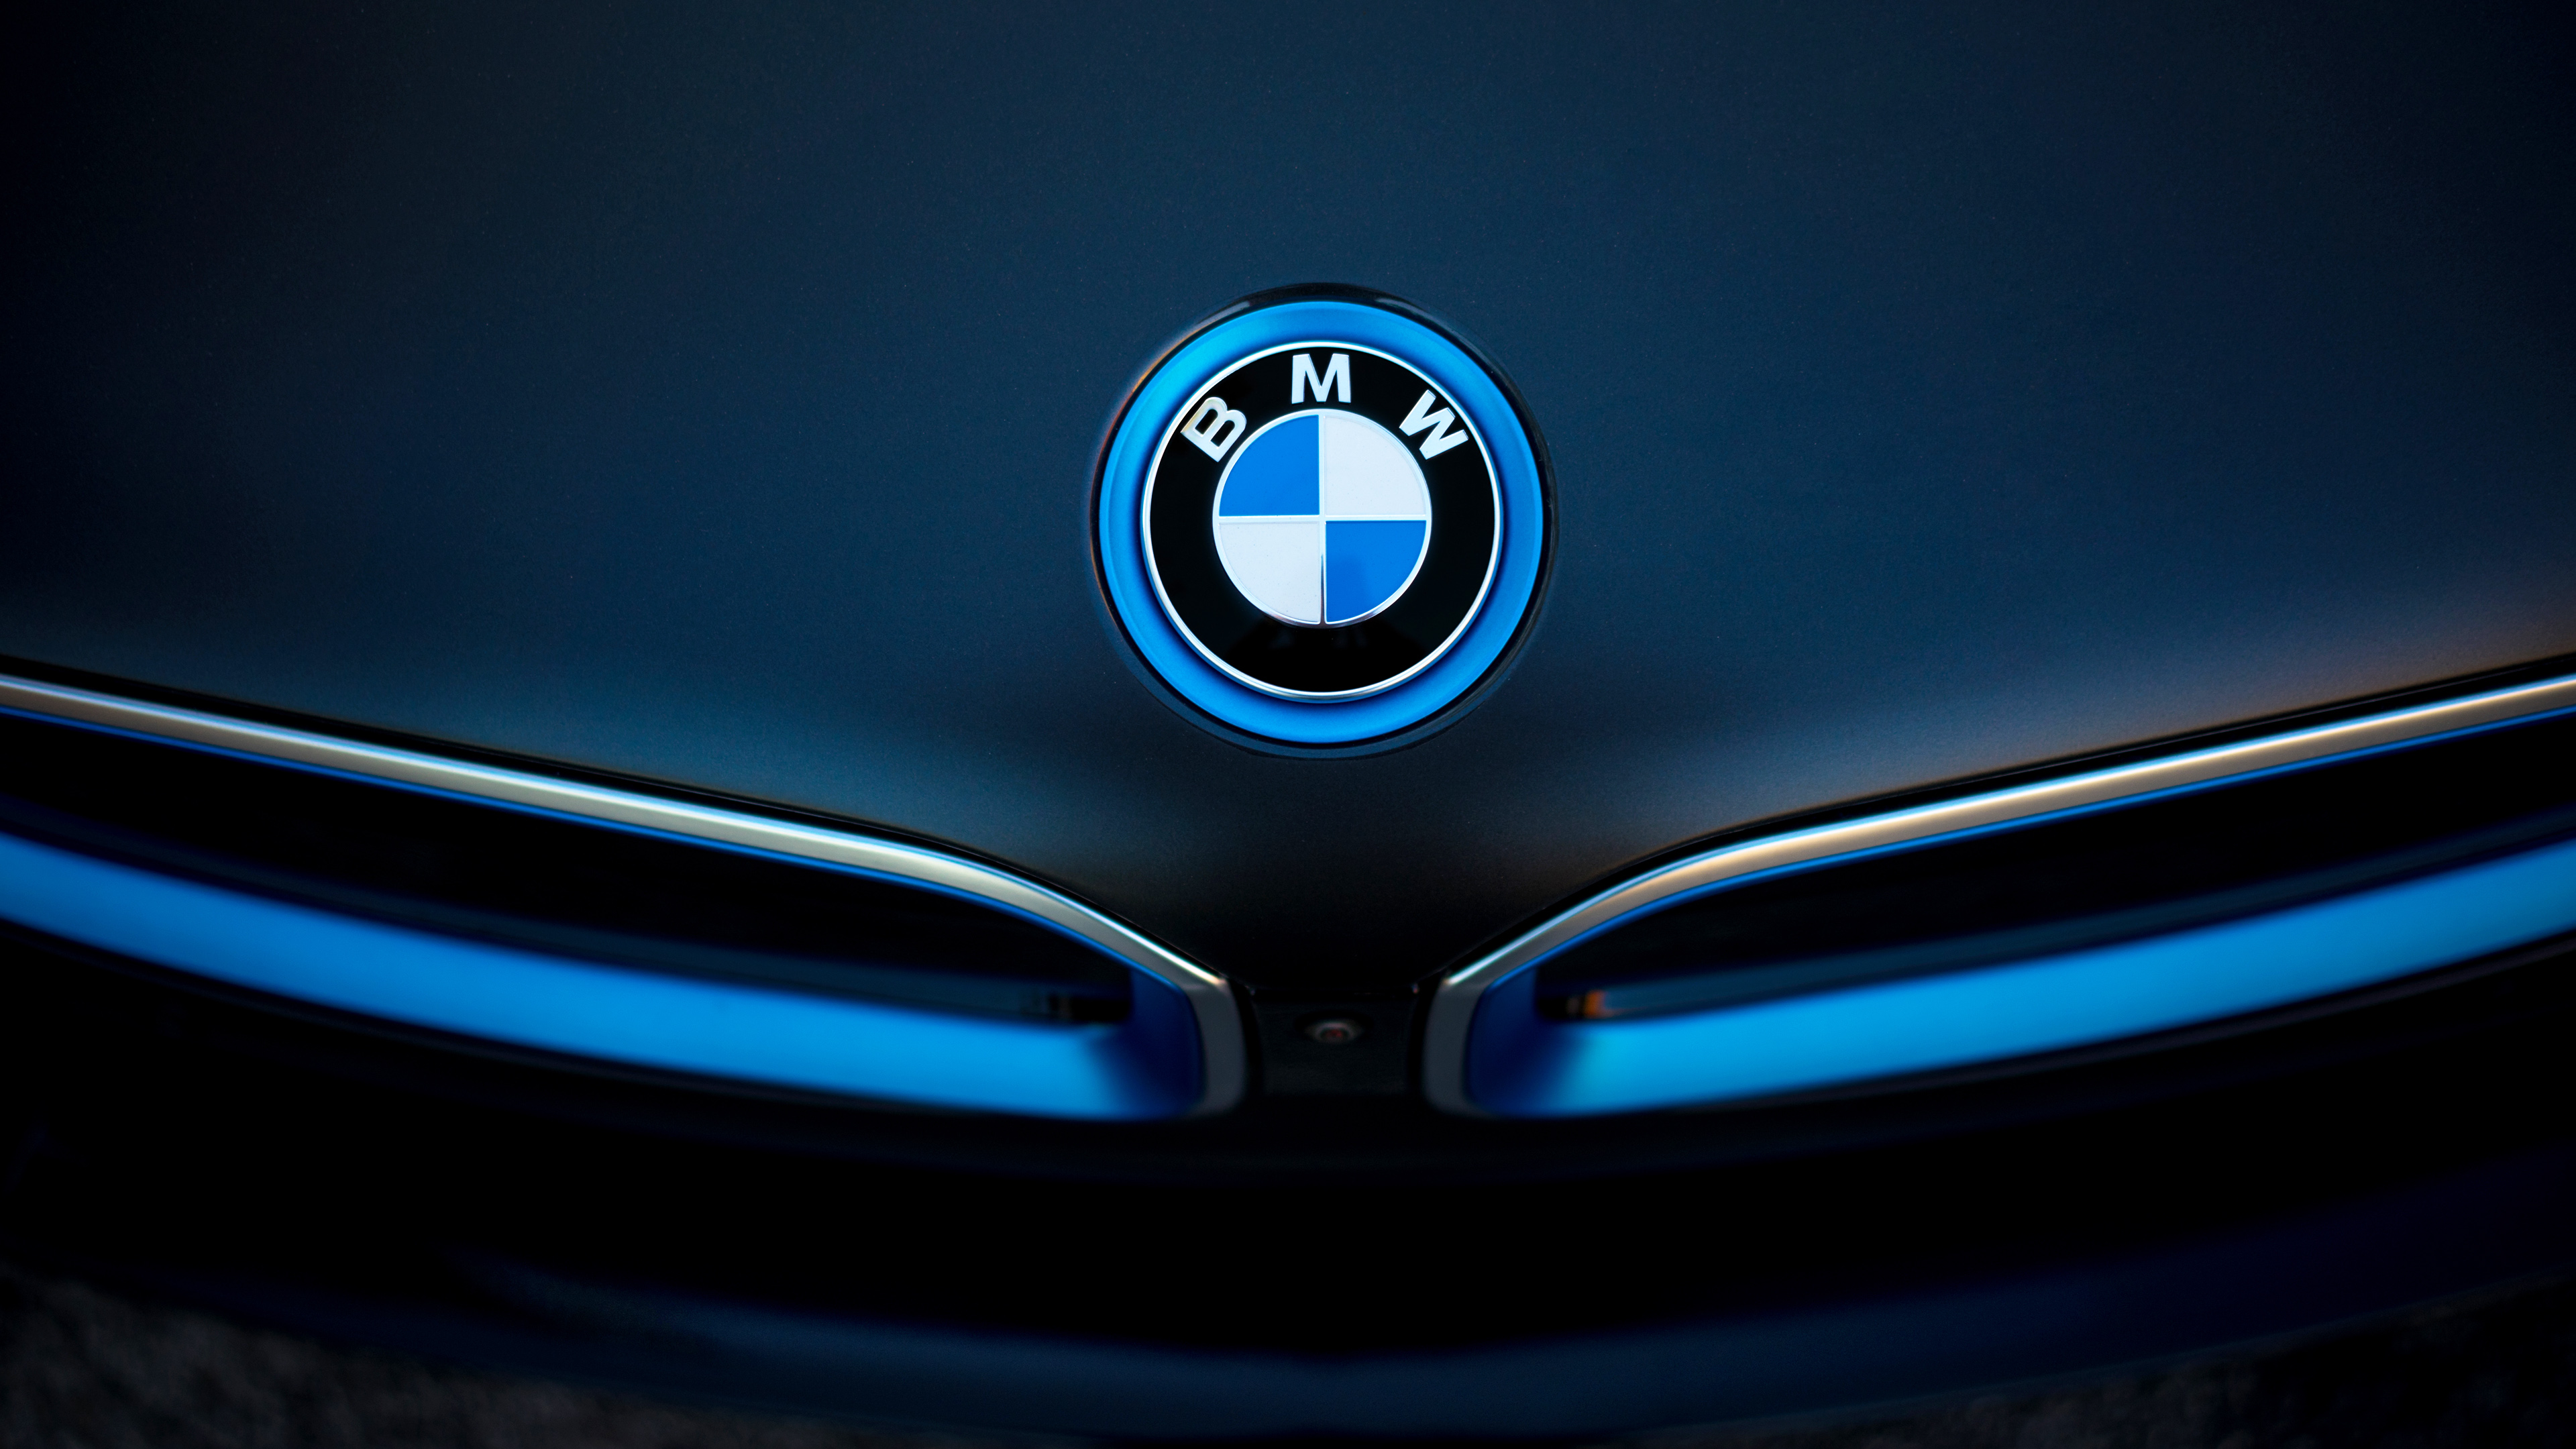 Bmw I8 Badge Wallpaper Hd Car Wallpapers Id 5540